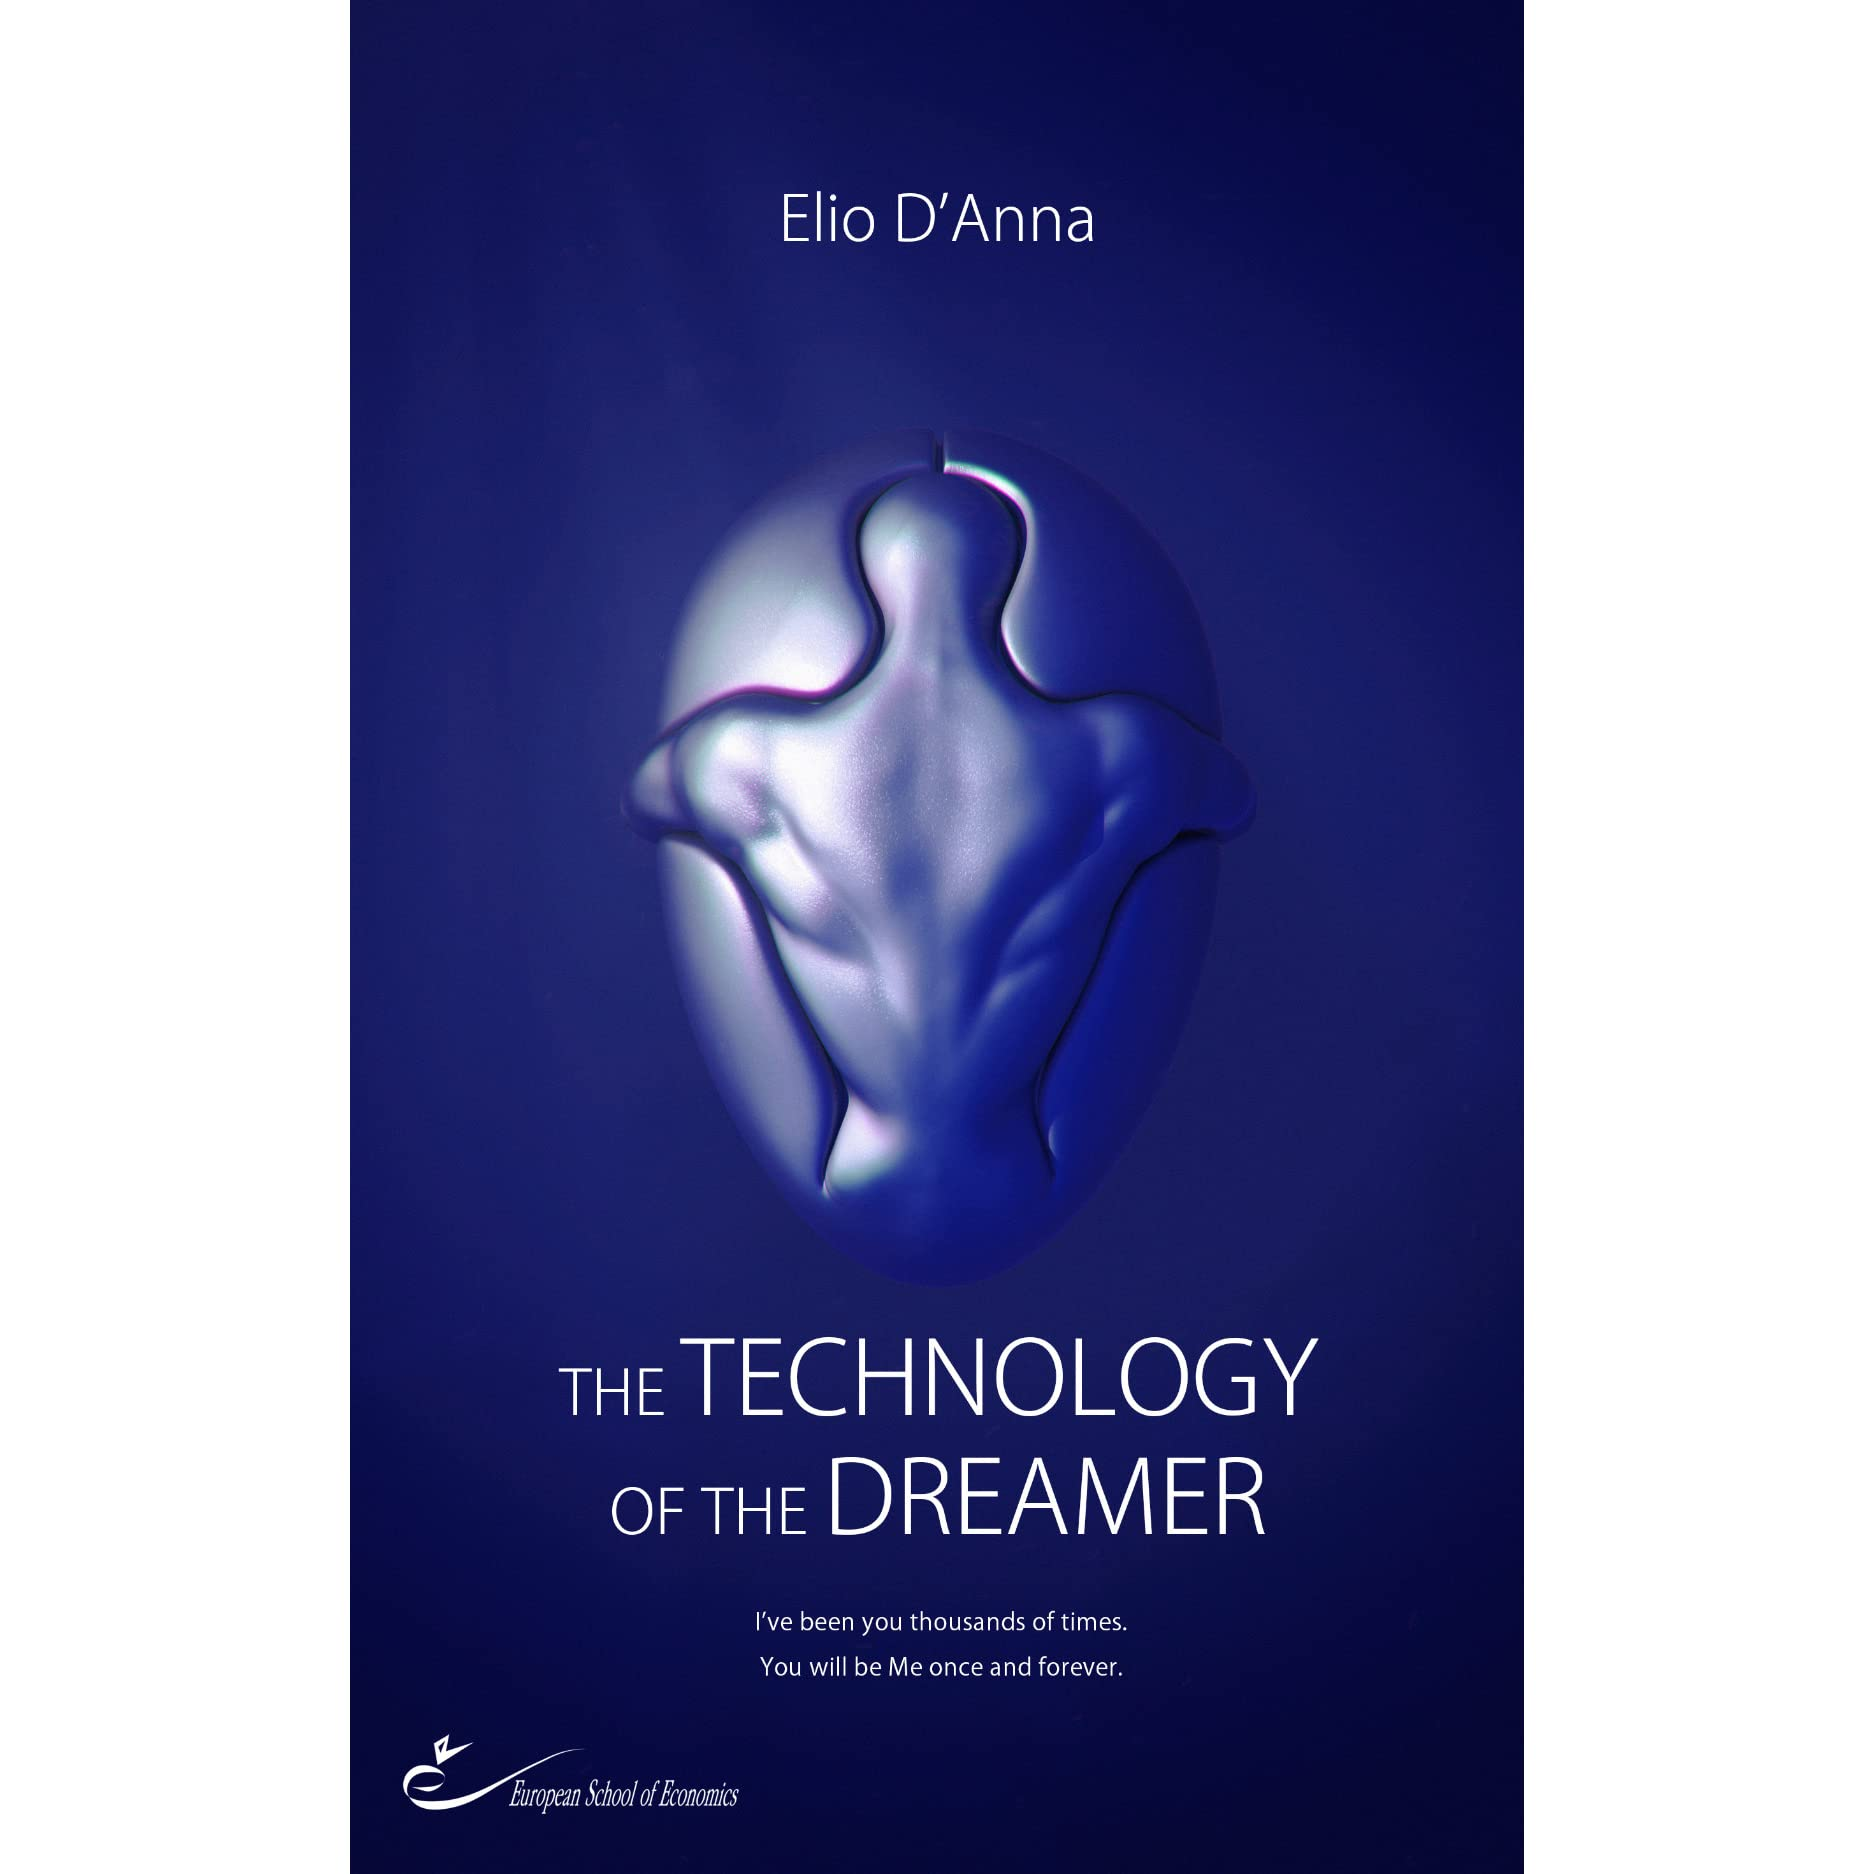 Technology of the dreamer the by elio danna fandeluxe Image collections